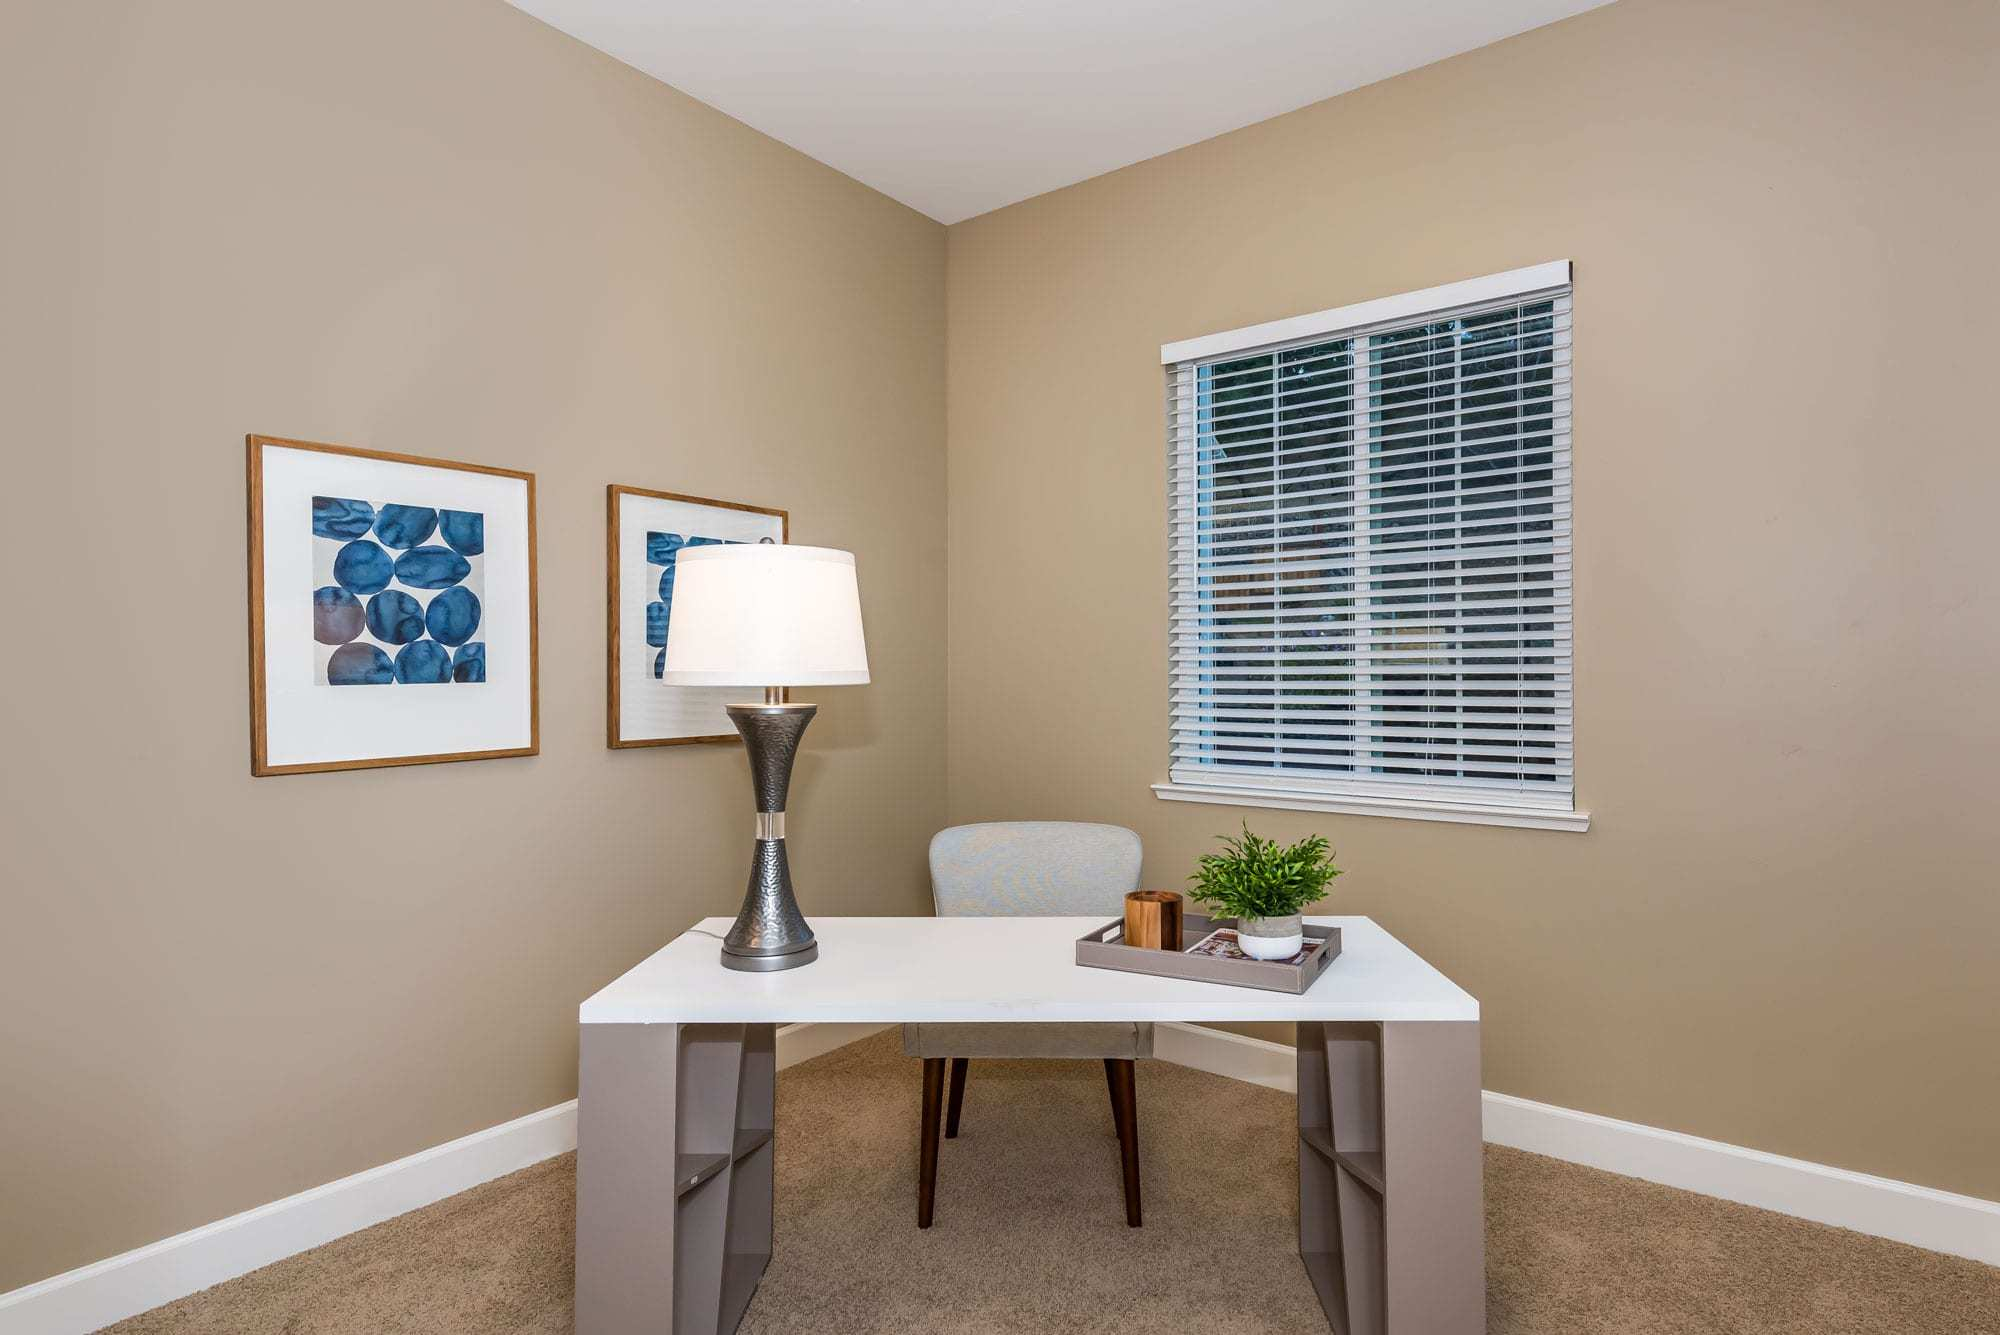 Living Area featured in the 3608 Fir Ridge Drive By Silvermark Luxury Homes in Santa Rosa, CA